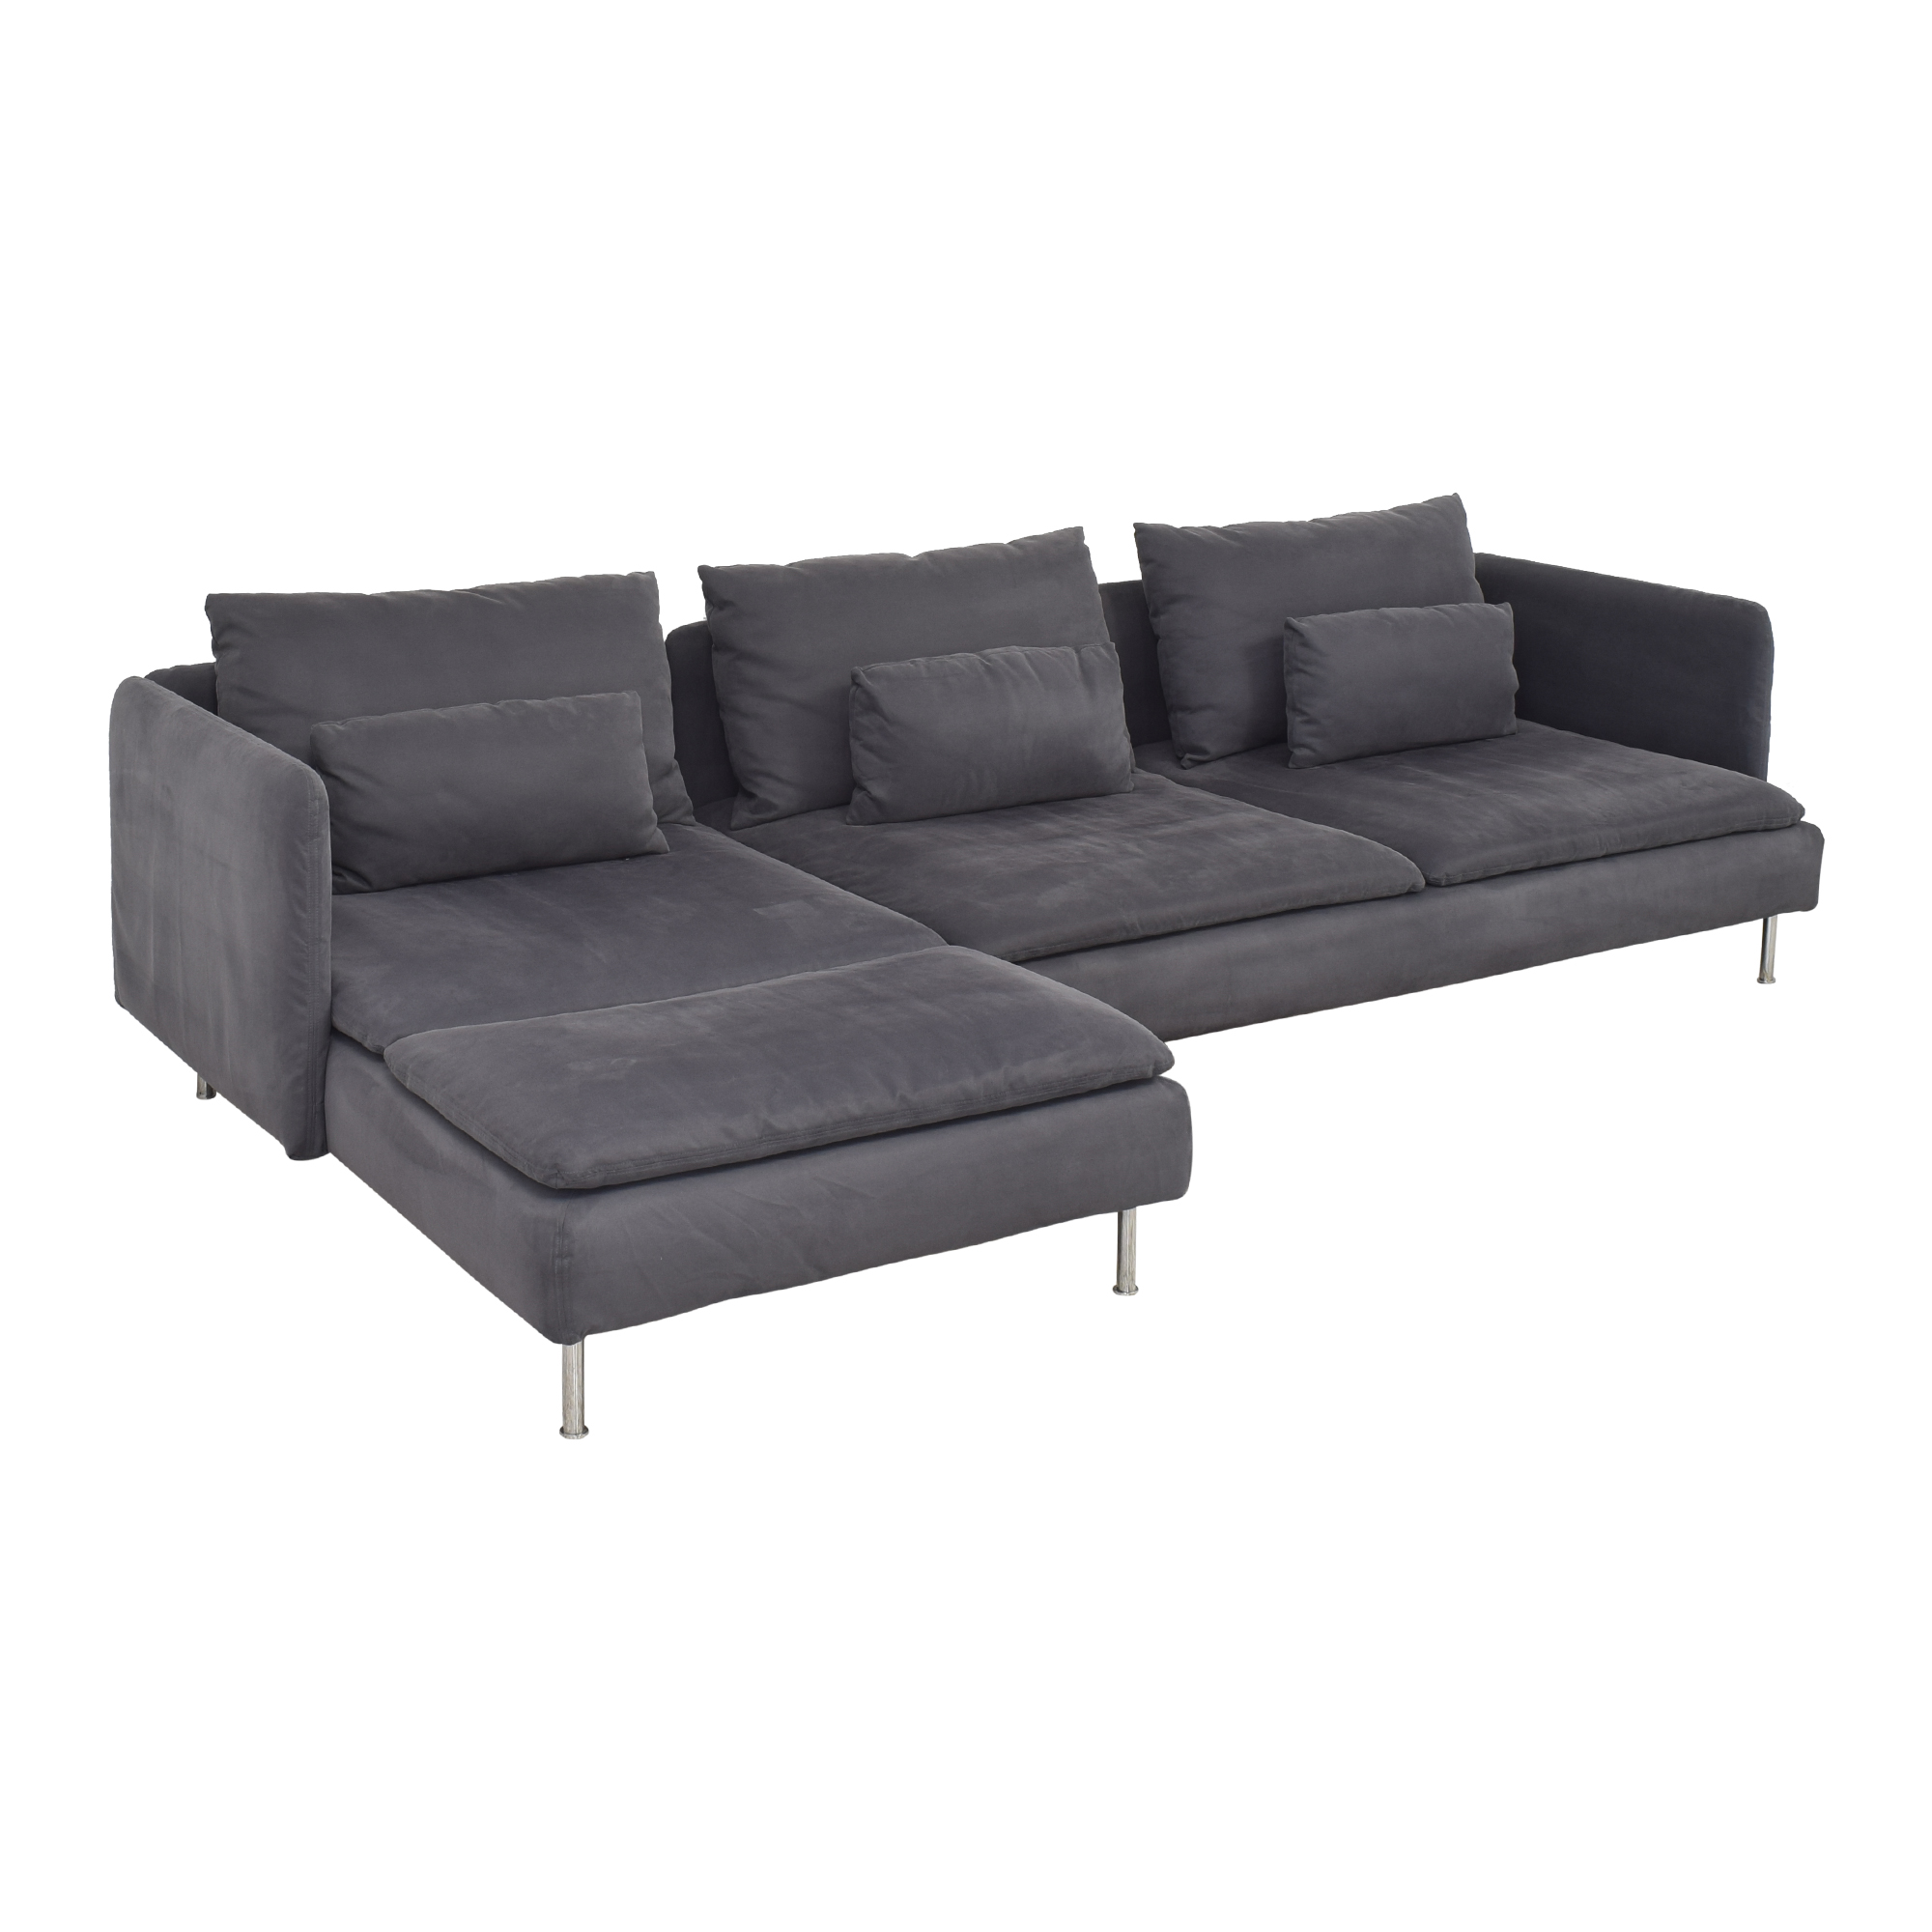 IKEA IKEA Söderhamn Four Seat Sectional with Chaise second hand